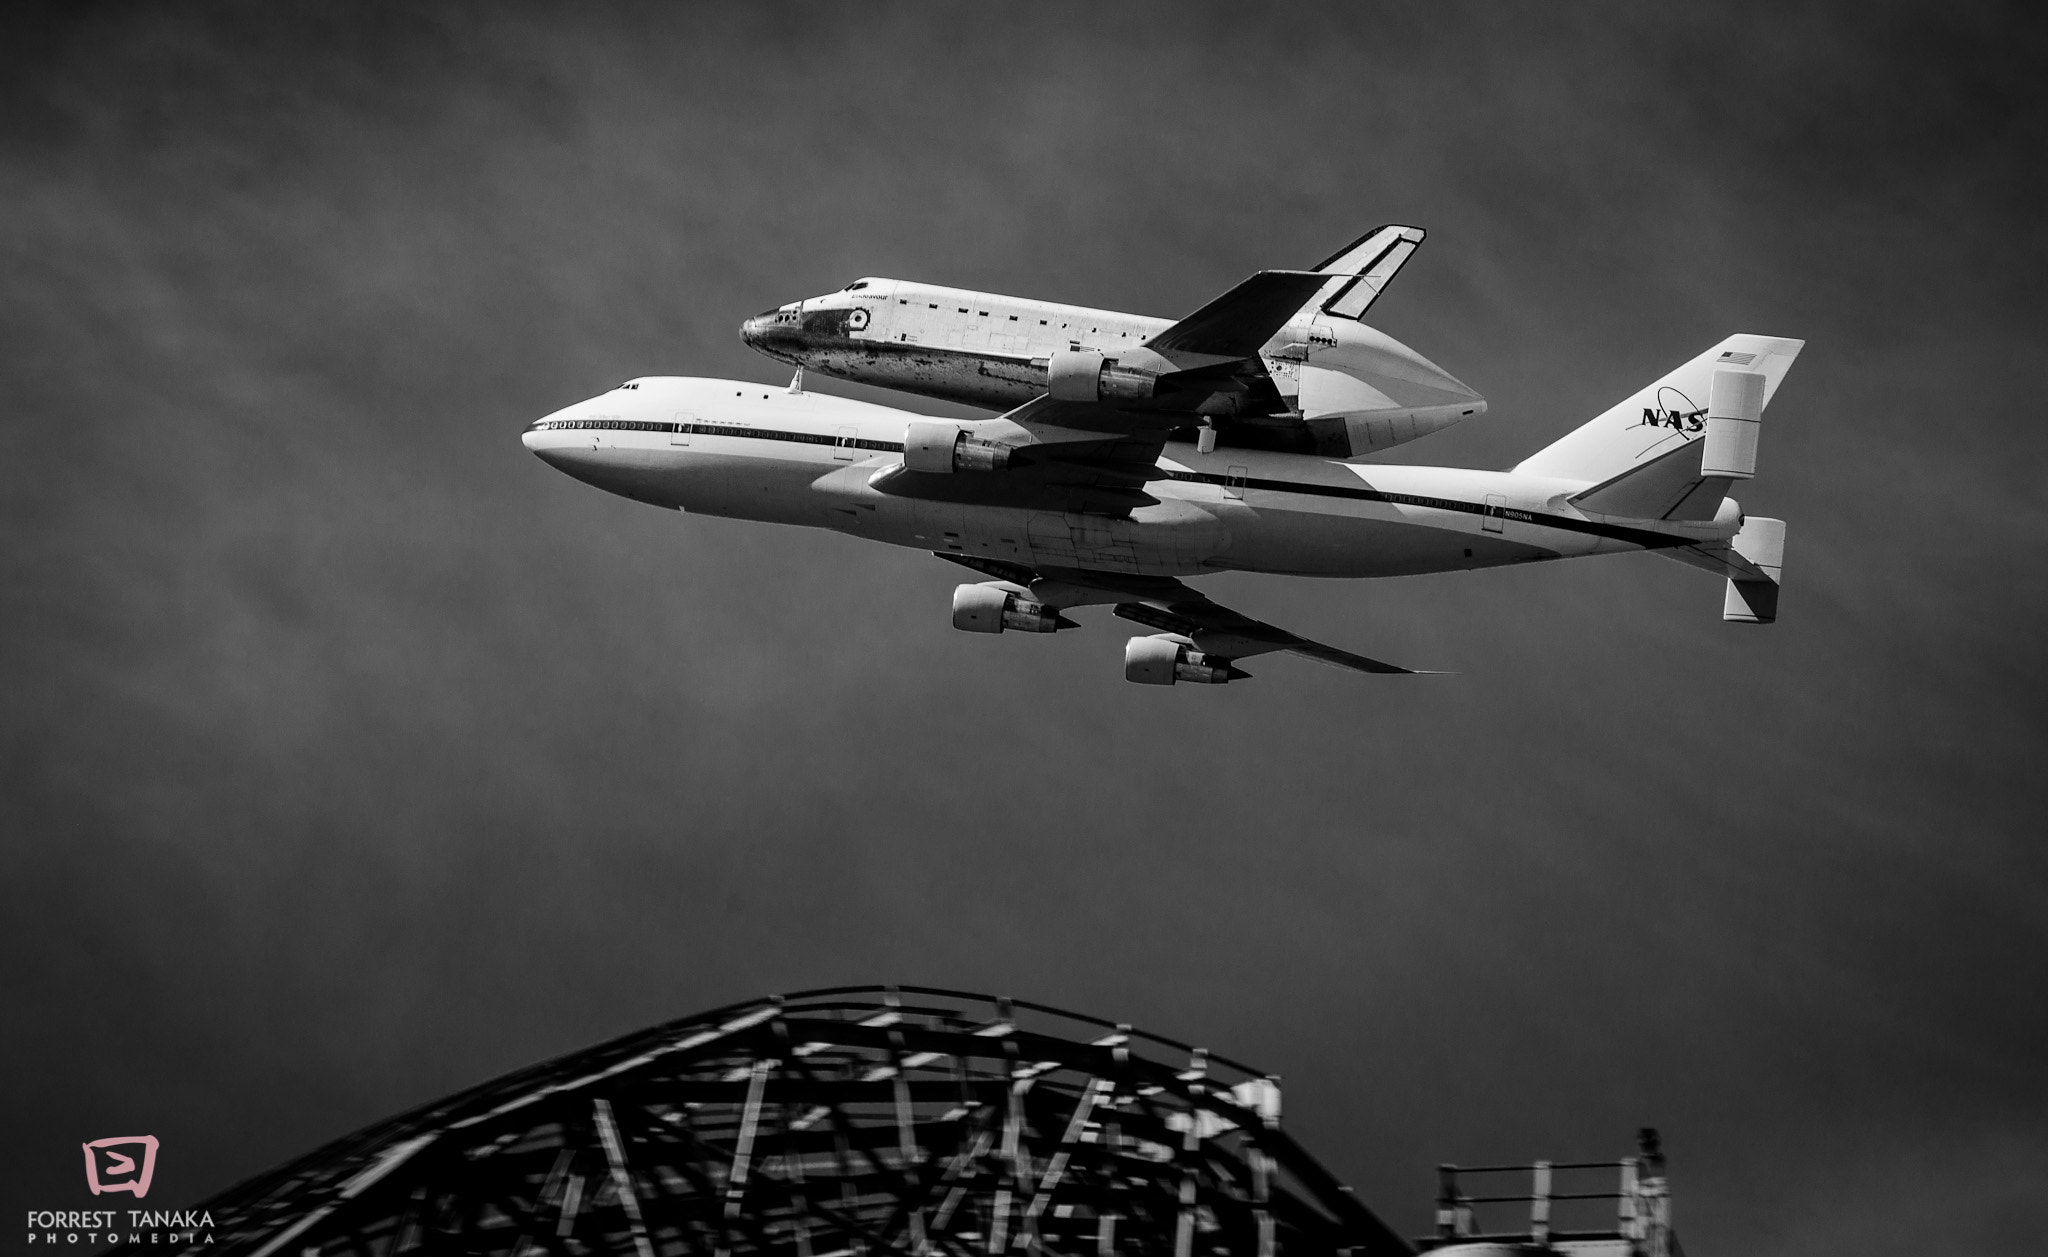 Photograph Space Shuttle Endeavour Flyover of NASA Ames by Forrest Tanaka on 500px